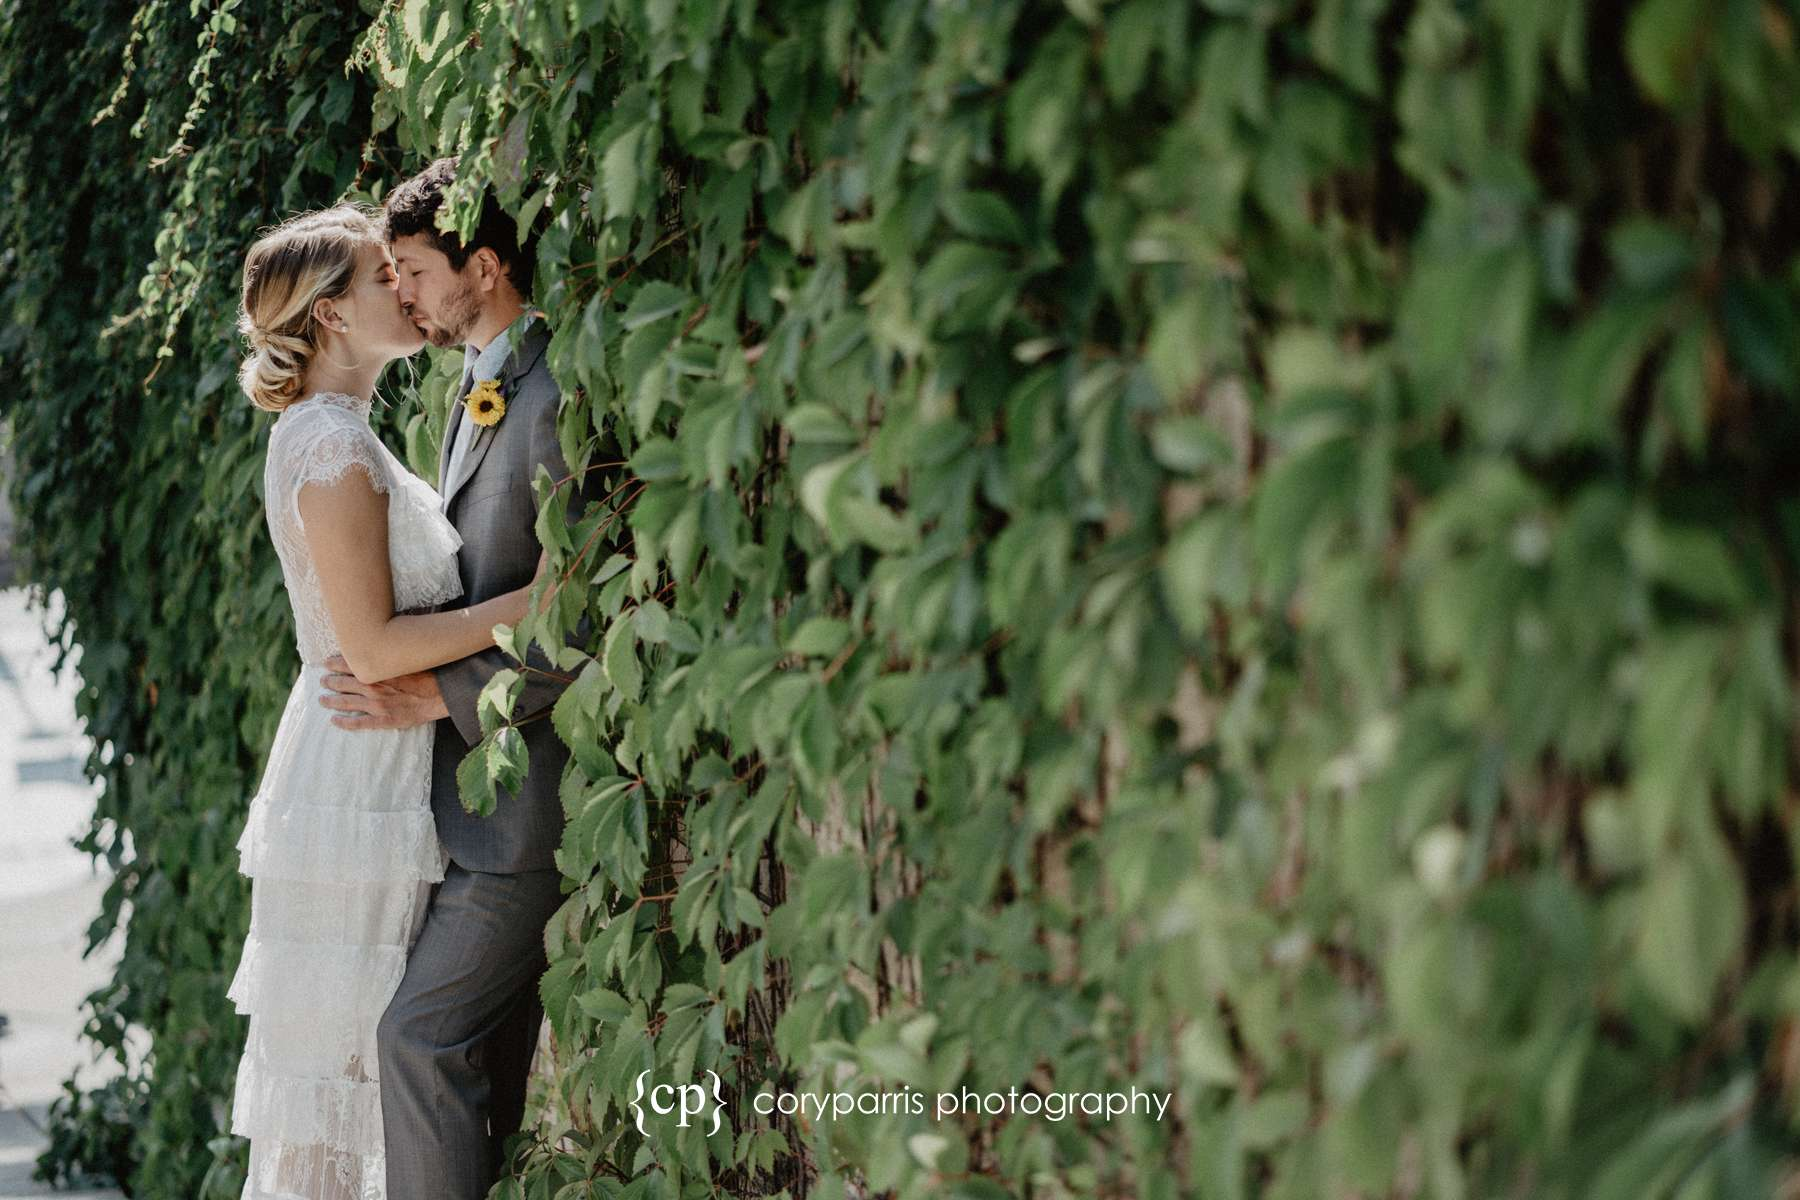 041-Seattle-Elopement-Courthouse.jpg